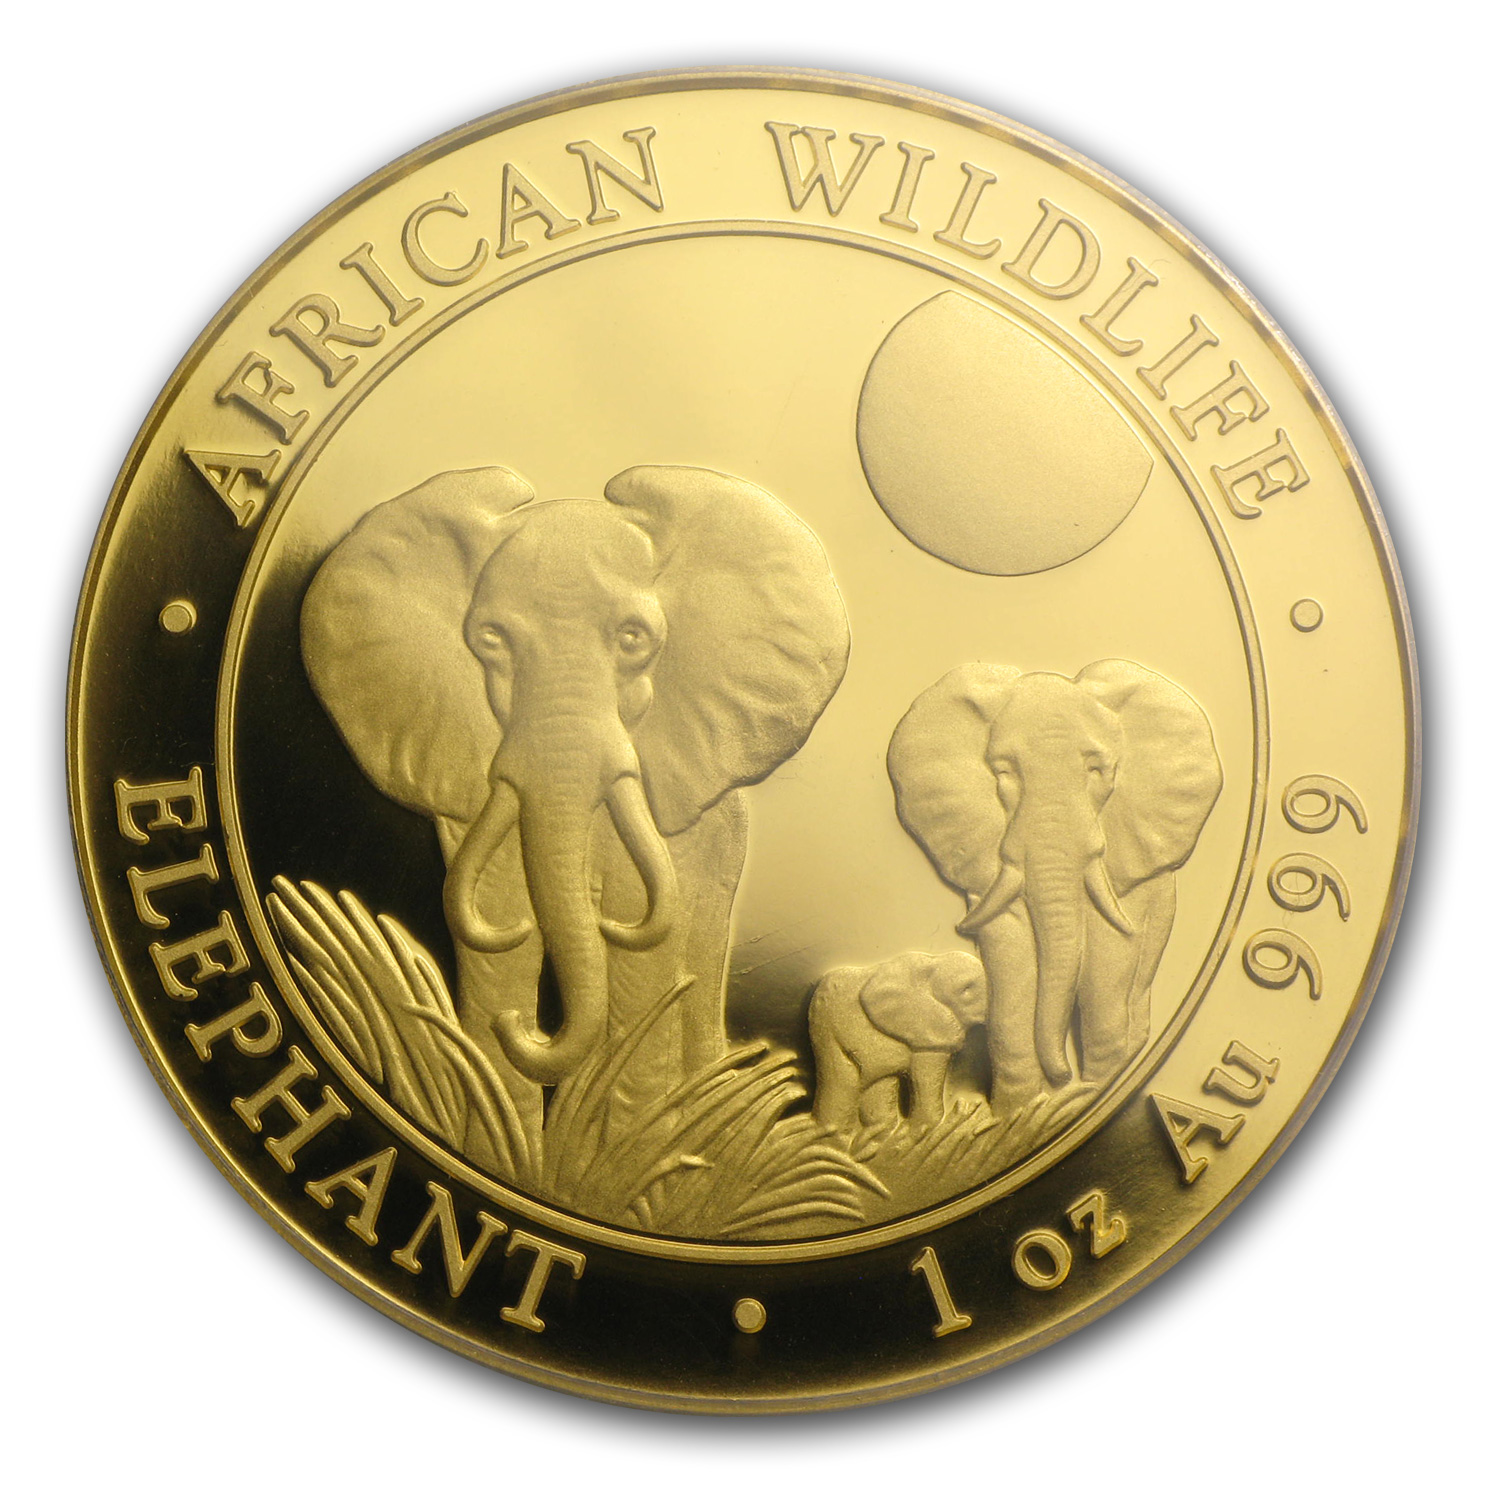 2014 Somalia 1 oz Proof Gold African Elephant PR-69 PCGS